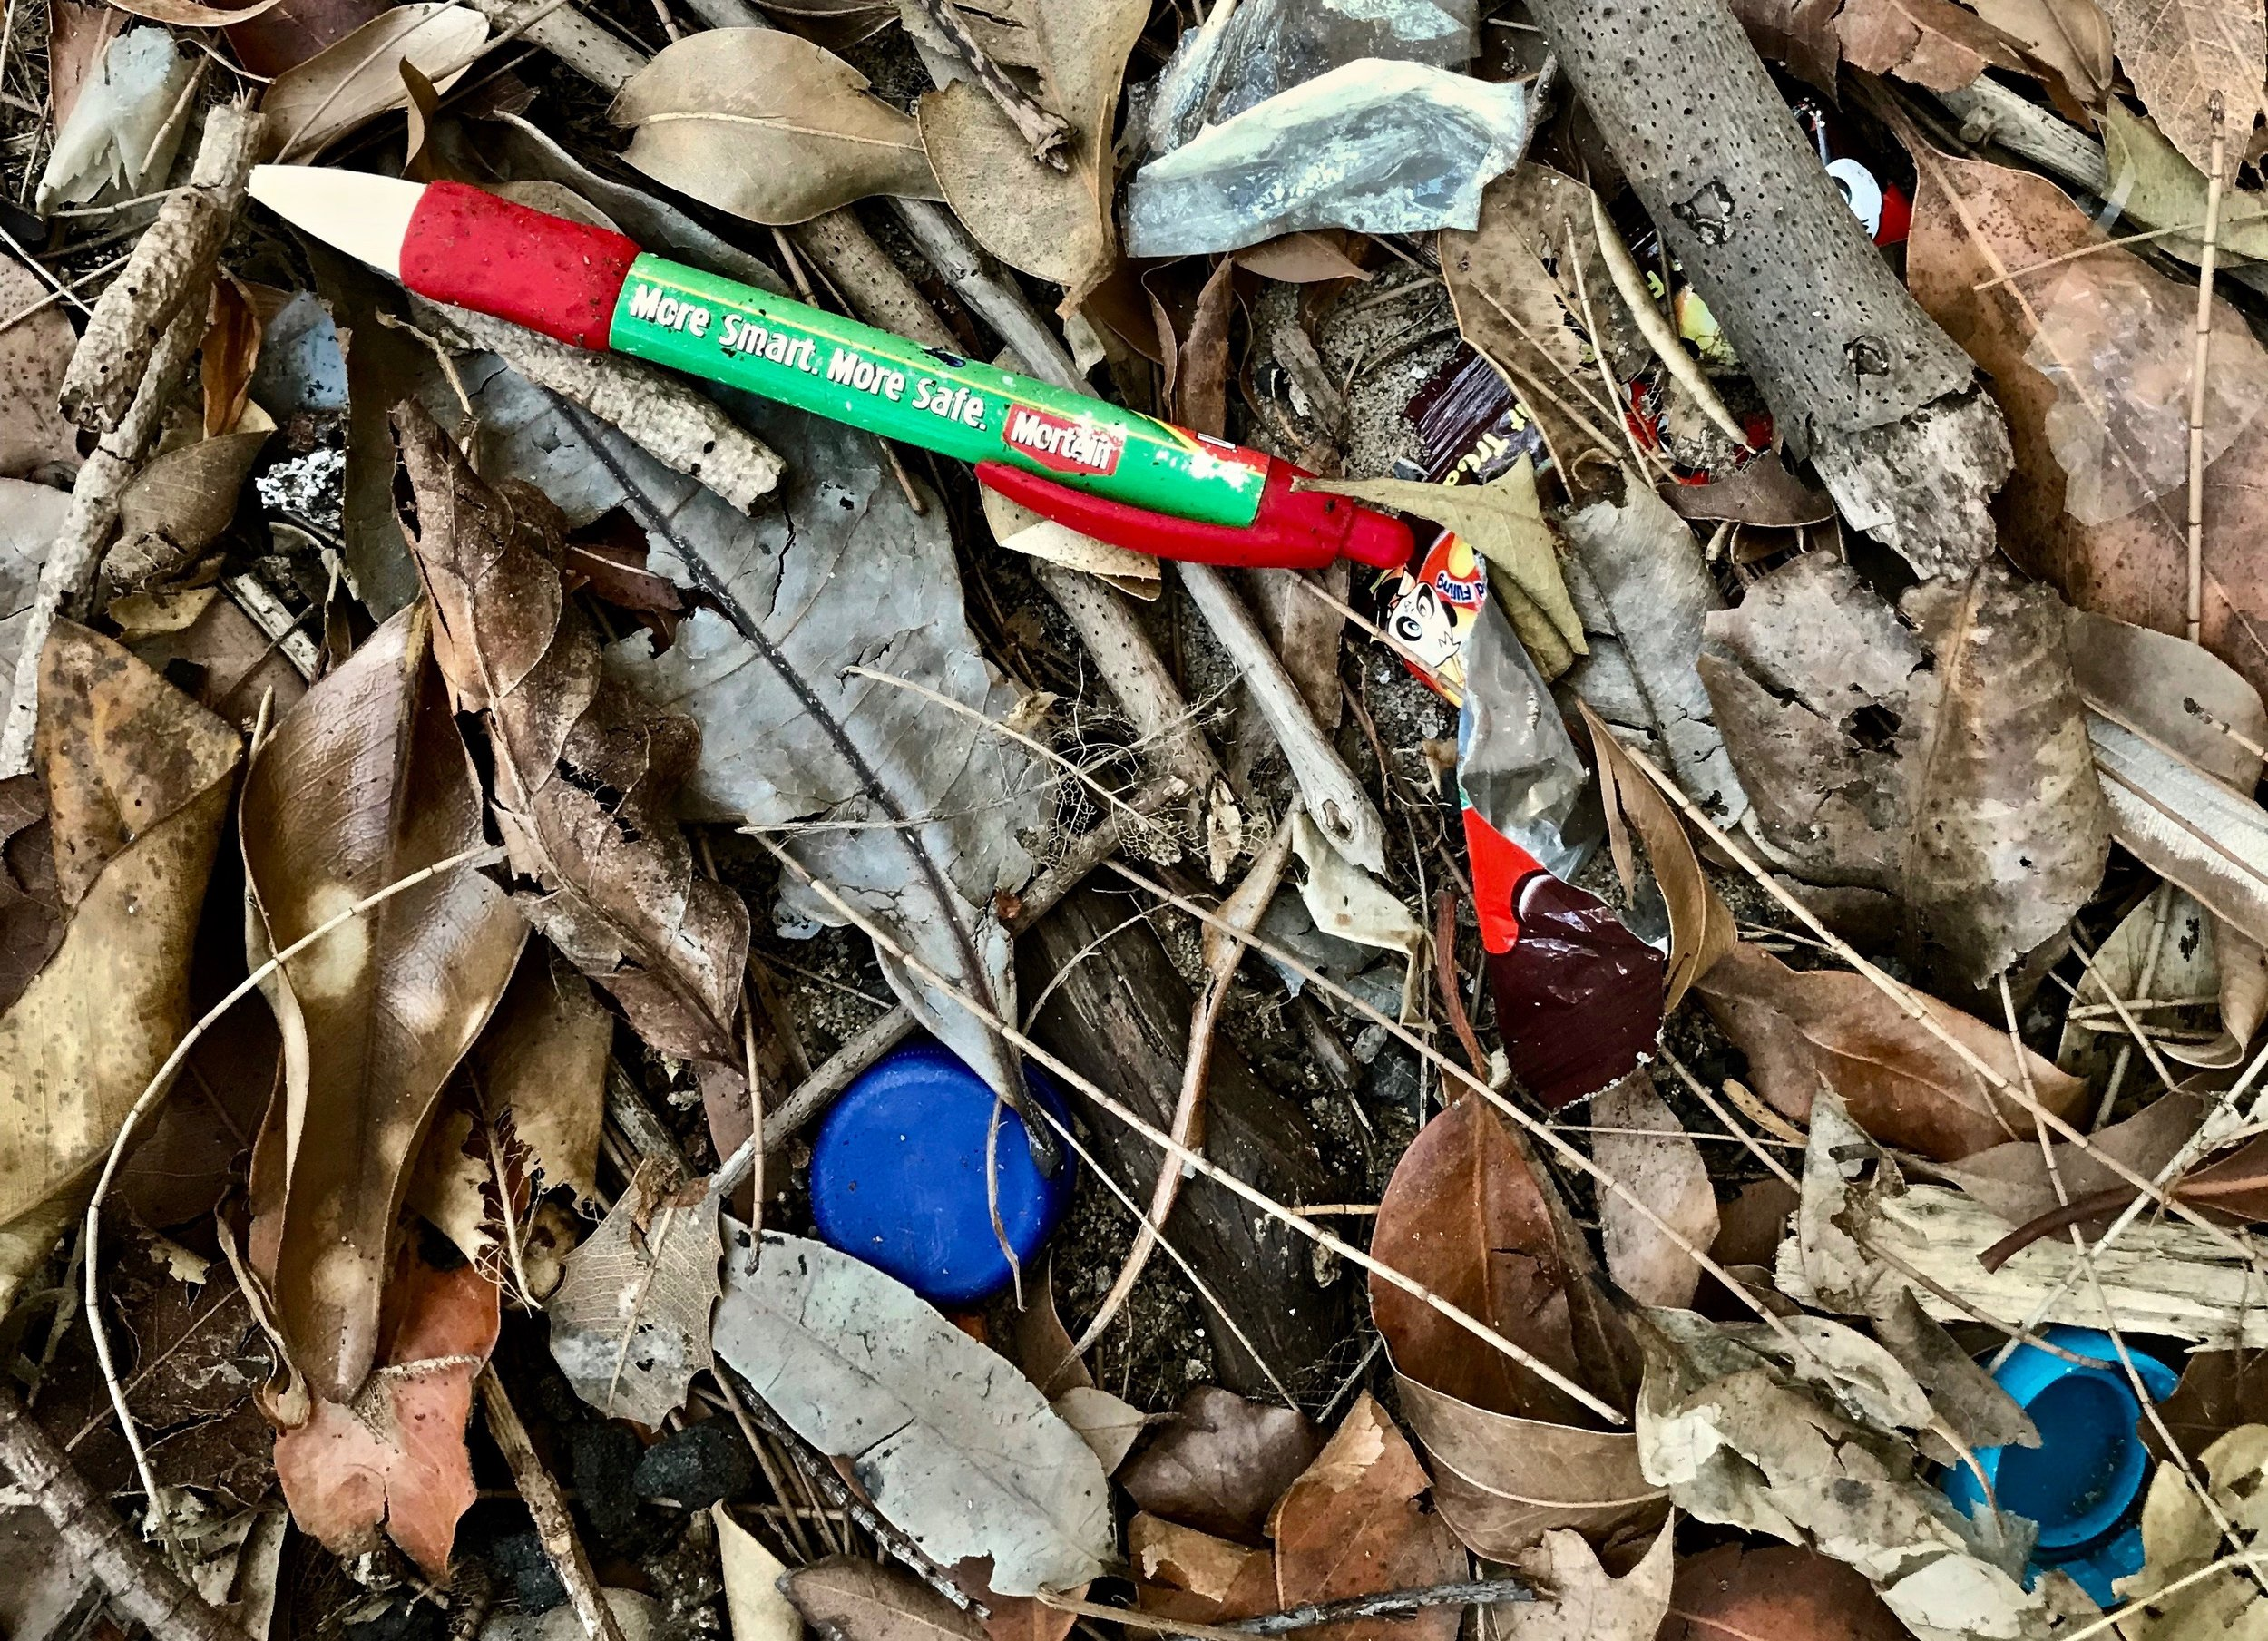 Wicked ironies - 'more smart? more safe? Mortein!'. Lane Cove, Sydney. Huge amounts of micro plastics found beneath washed up natural debris. Never assume a site that appears at first clear is. Rummage a little and you'll discover that a lot more lethal plastics lie beneath.